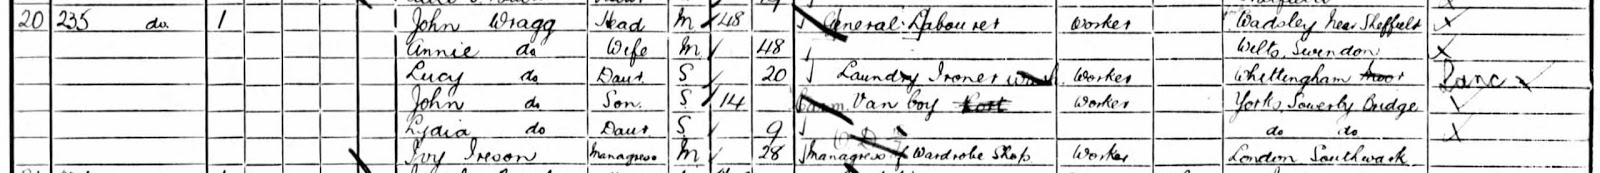 1901 census of England, London, Civil Parish of Camberwell, folio 143, page 4, Household of John Wragg; digital images, Ancestry.com, Ancestry.com (http://www.ancestry.com : accessed 23 Sep 2014); citing PRO RG 13/506.